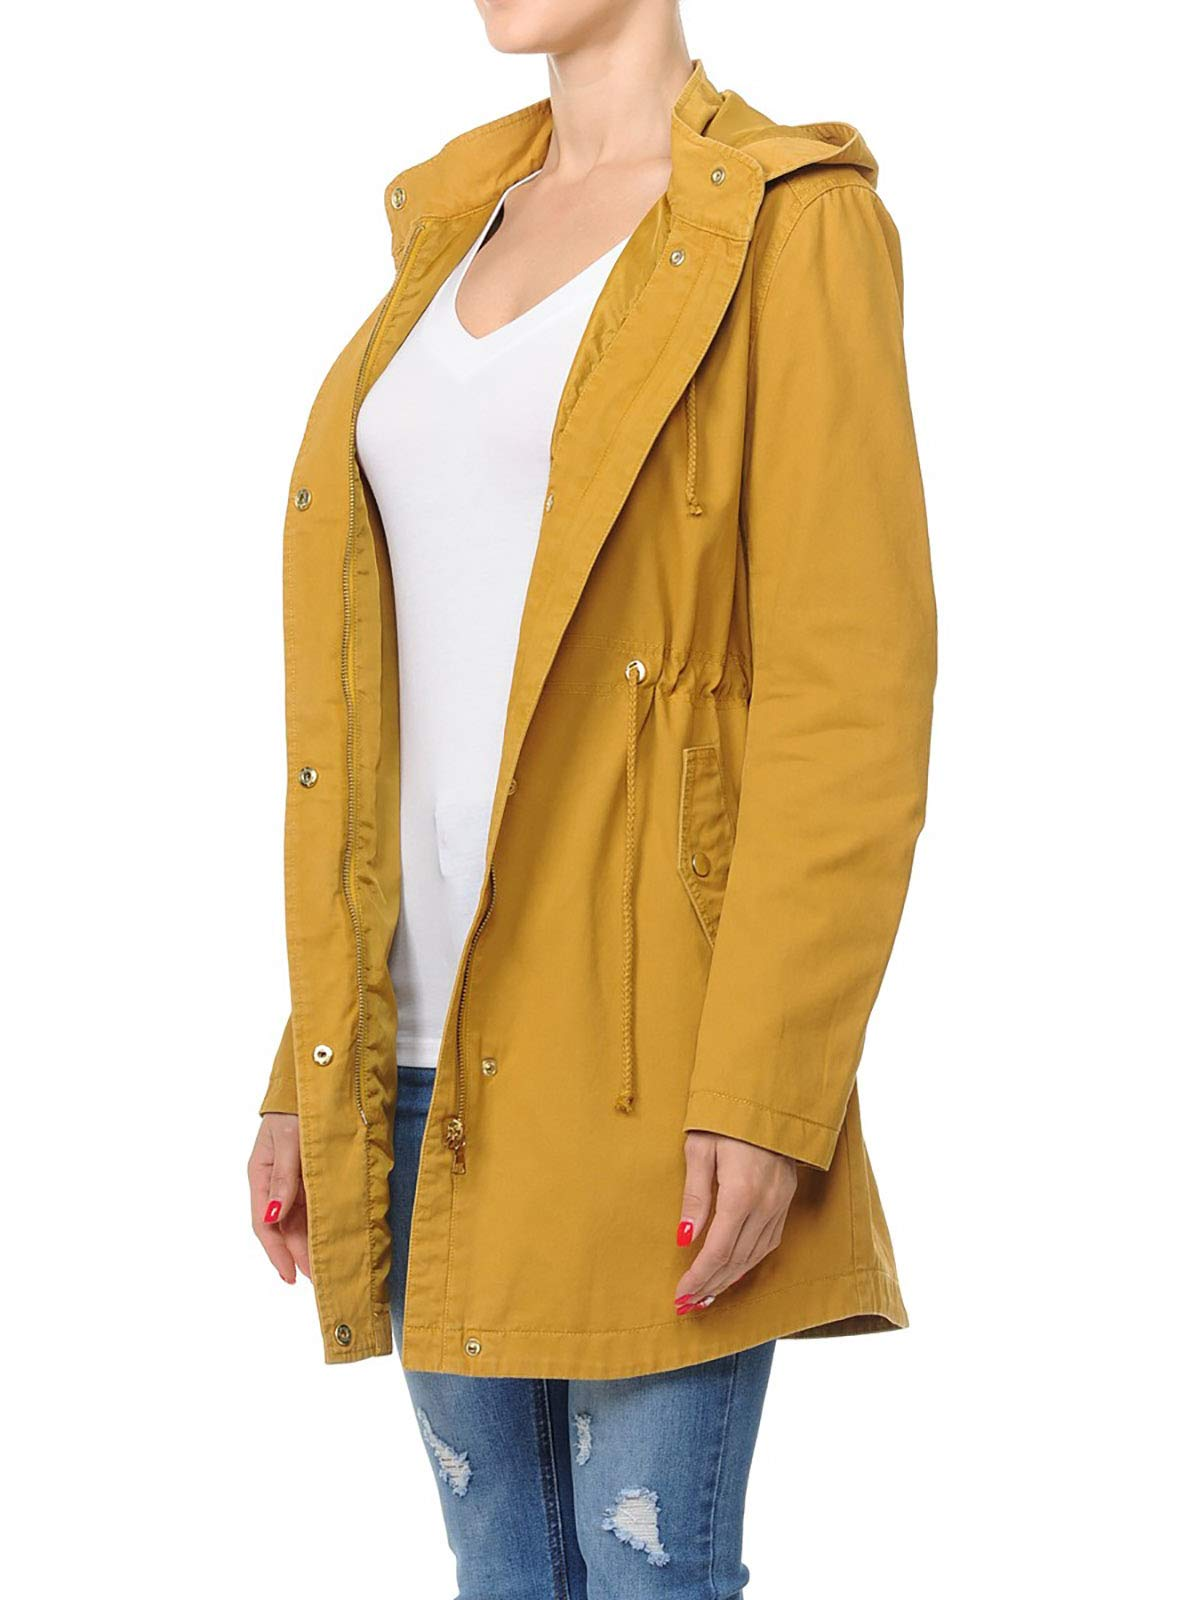 Instar Mode Women's Trendy Cotton Oversized Hooded Anorak Jacket Olive L by Instar Mode (Image #3)